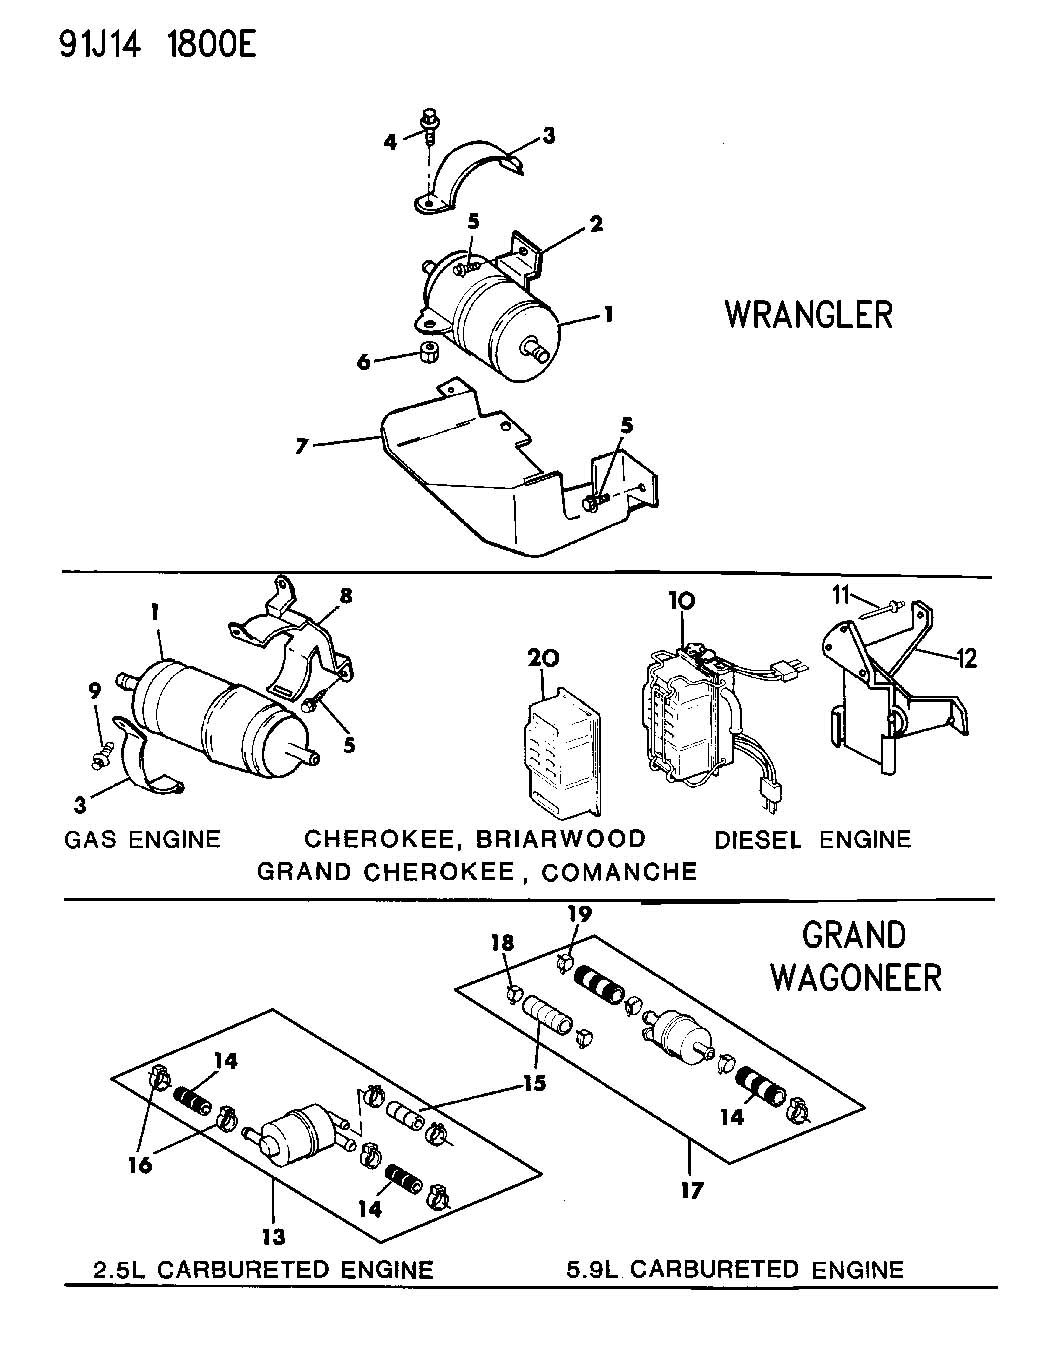 Jeep Wagoneer Fuel Filter Diagram Control Wiring 2000 Wrangler Location Filters Cherokee Briarwood Grand 1999